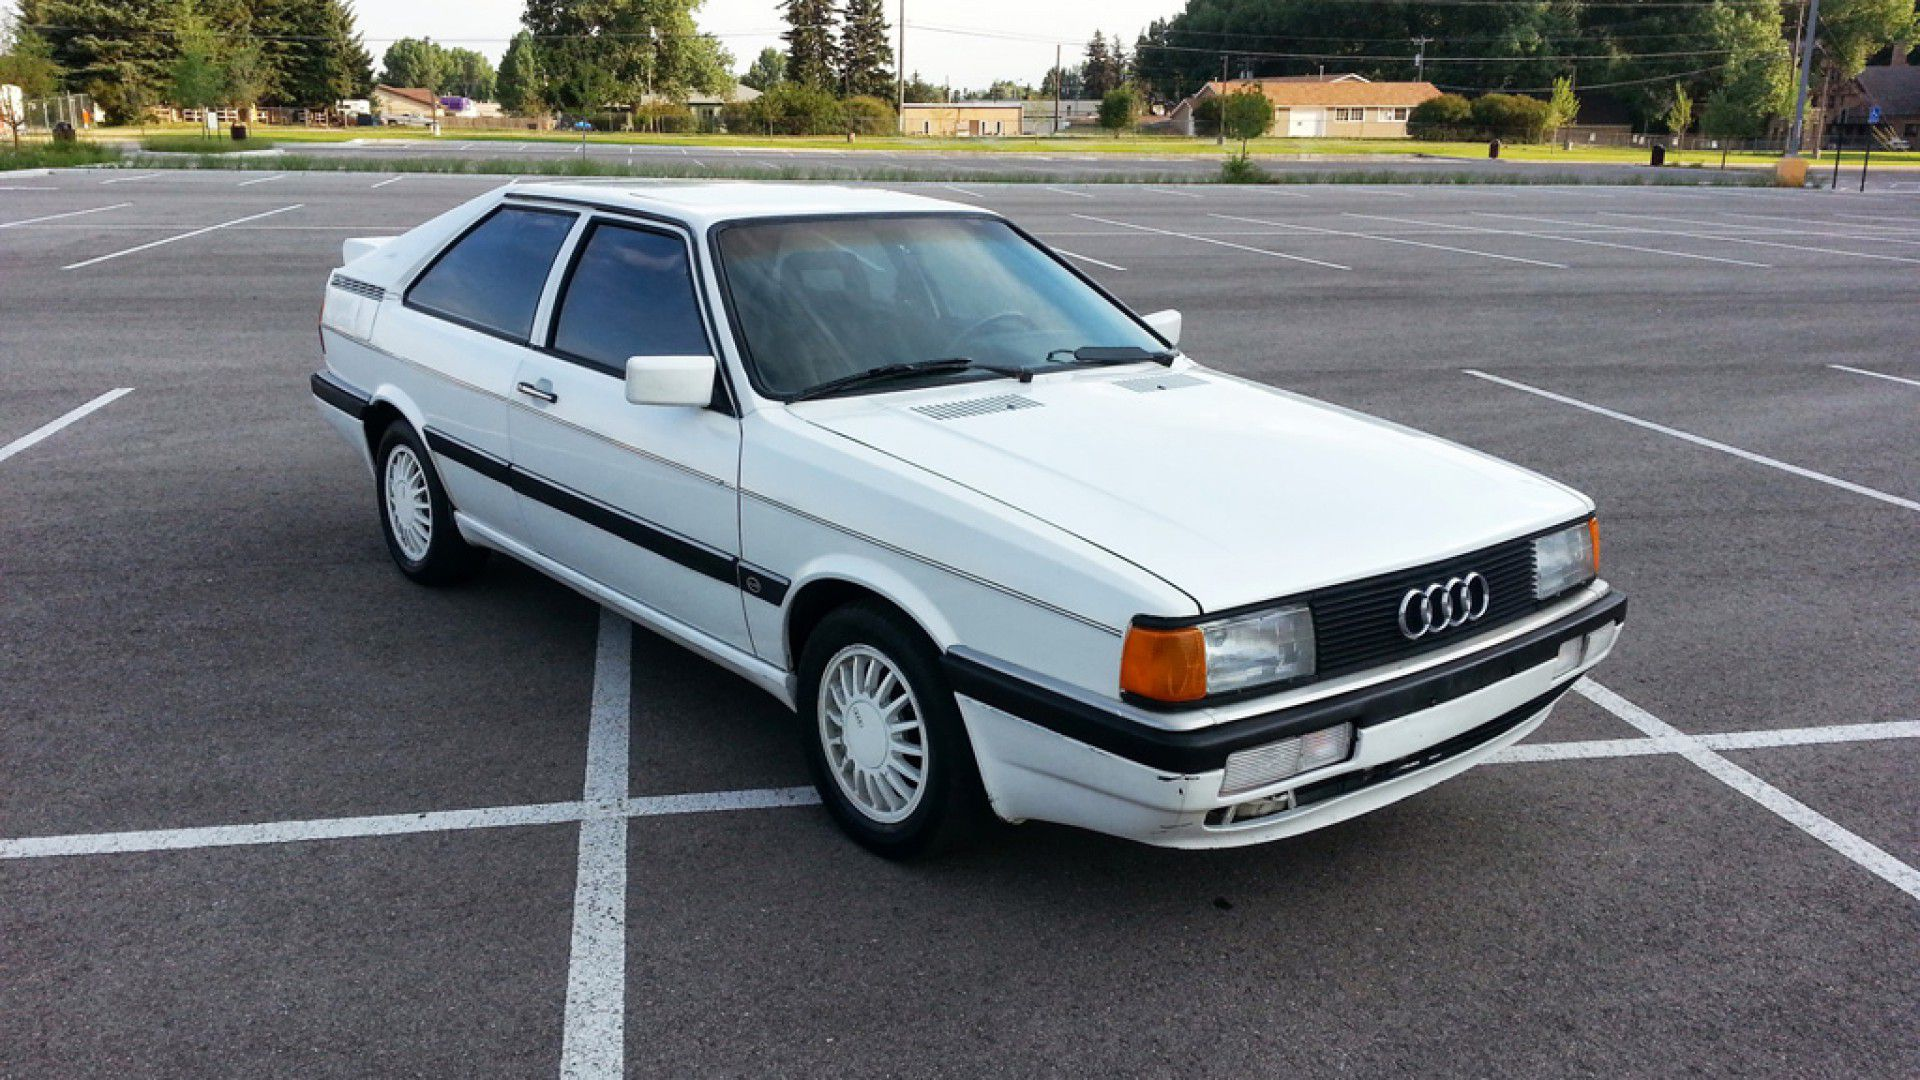 Audi Coupe (1988 to 1995)